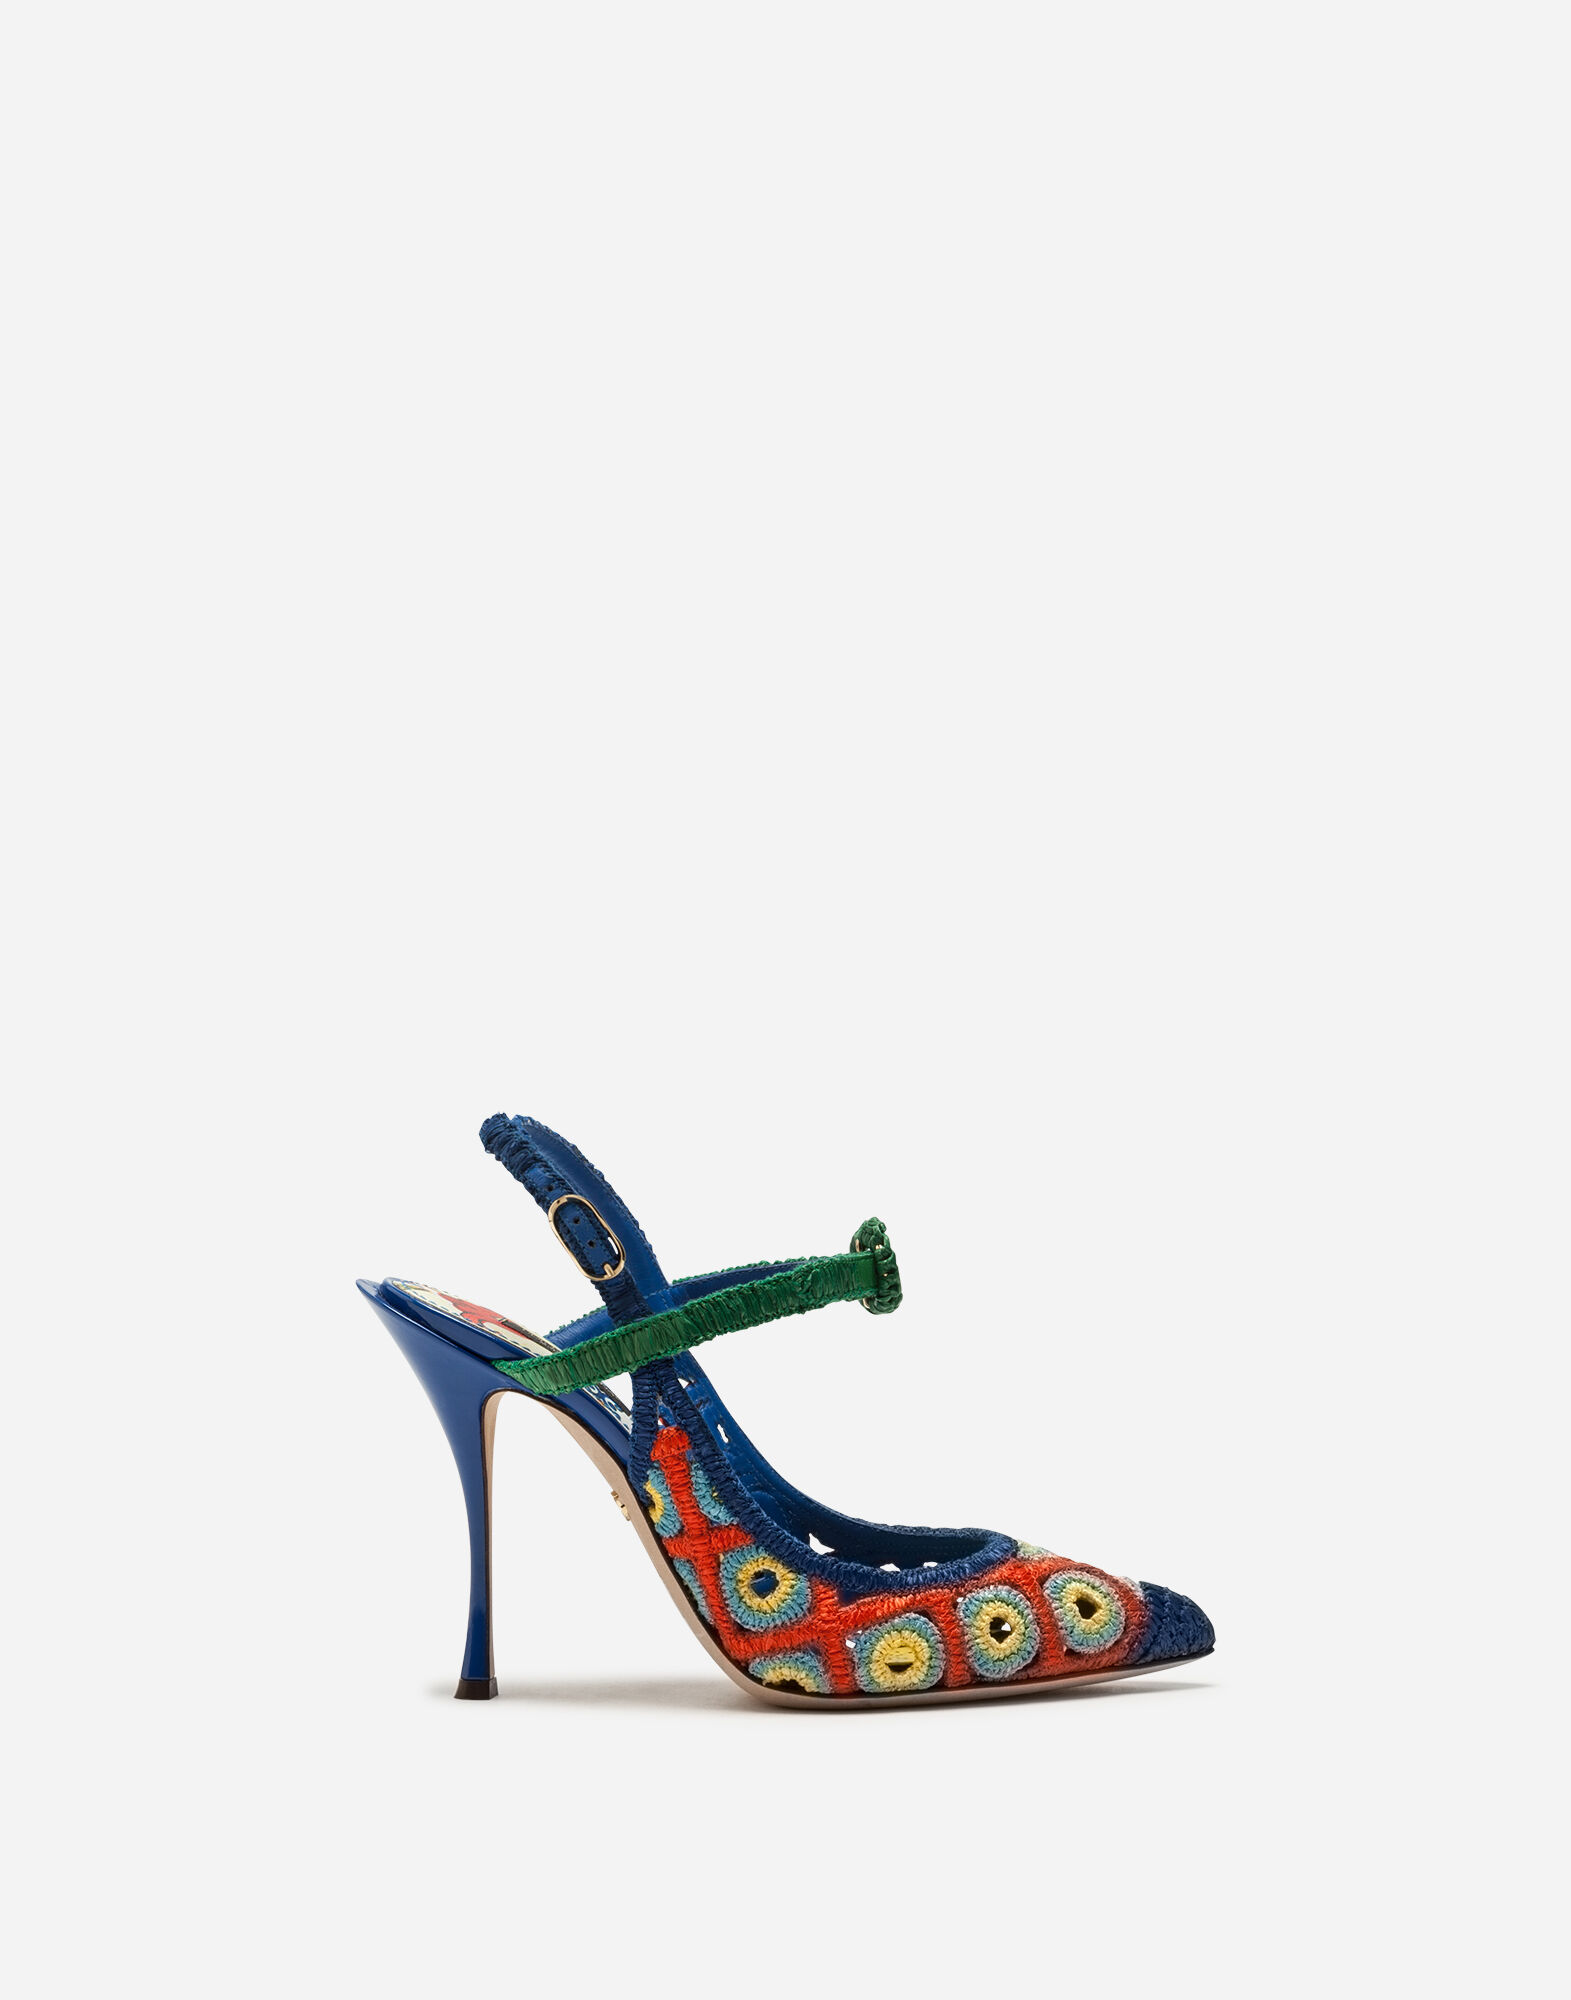 CROCHETED RAFFIA AND PATENT LEATHER SLINGBACKS